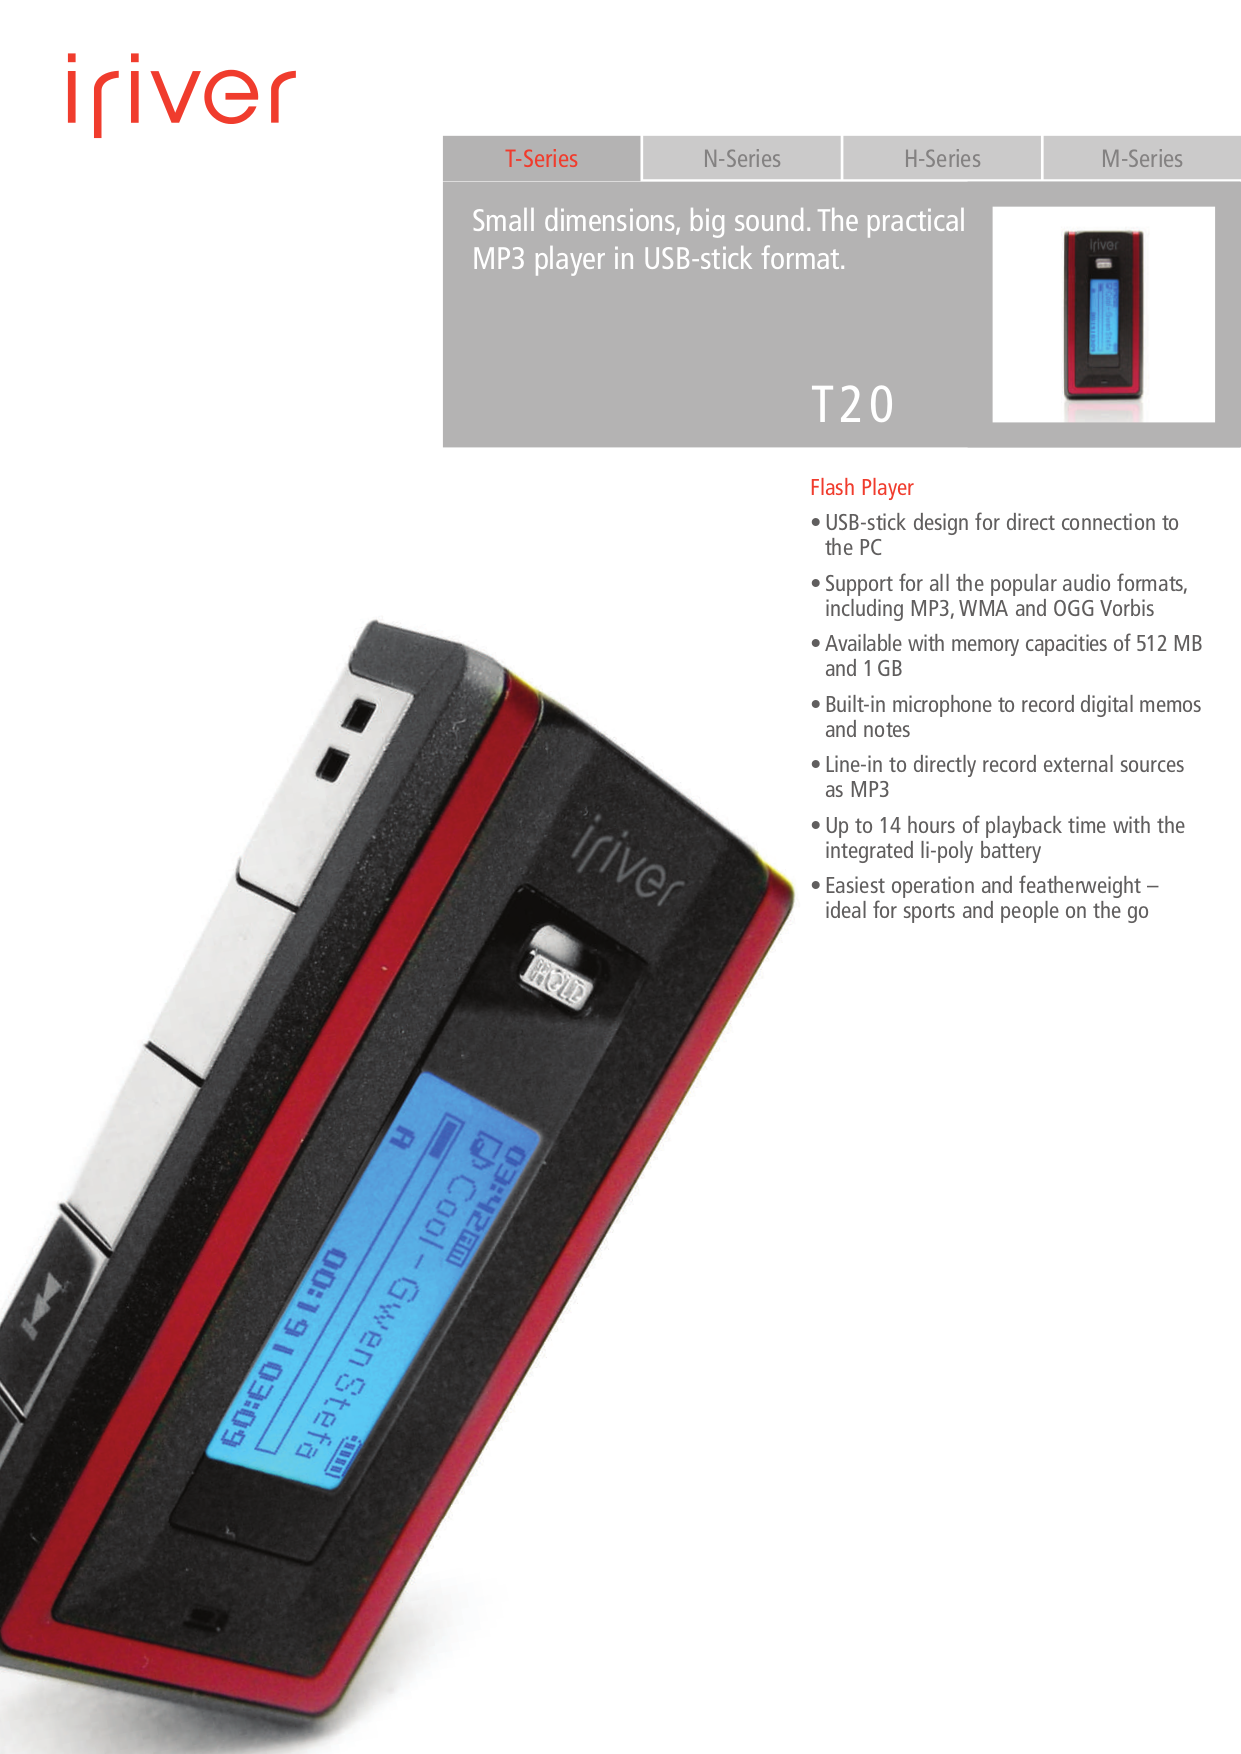 download free pdf for iriver t20 512mb mp3 player manual rh umlib com iriver disney mp3 player manual iriver mp3 player manual ifp 895